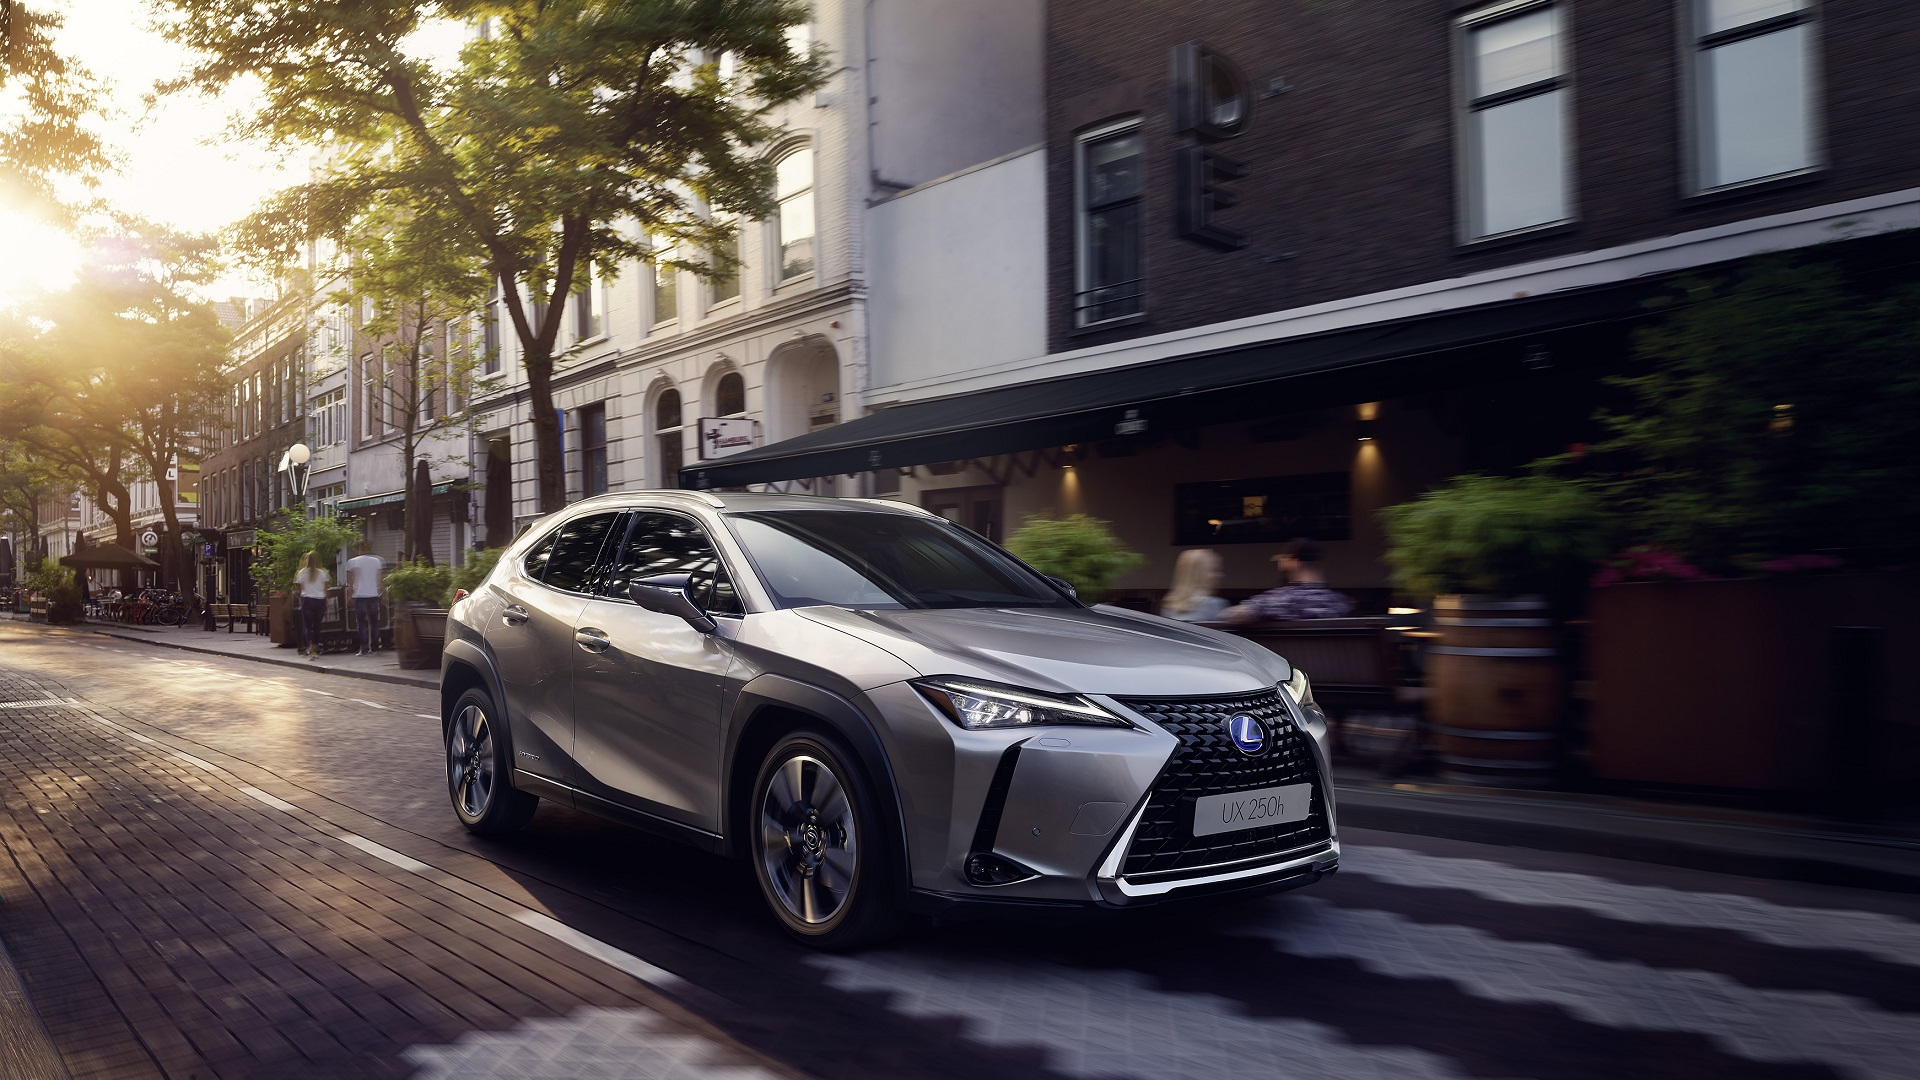 Lexus UX 250h Video Image